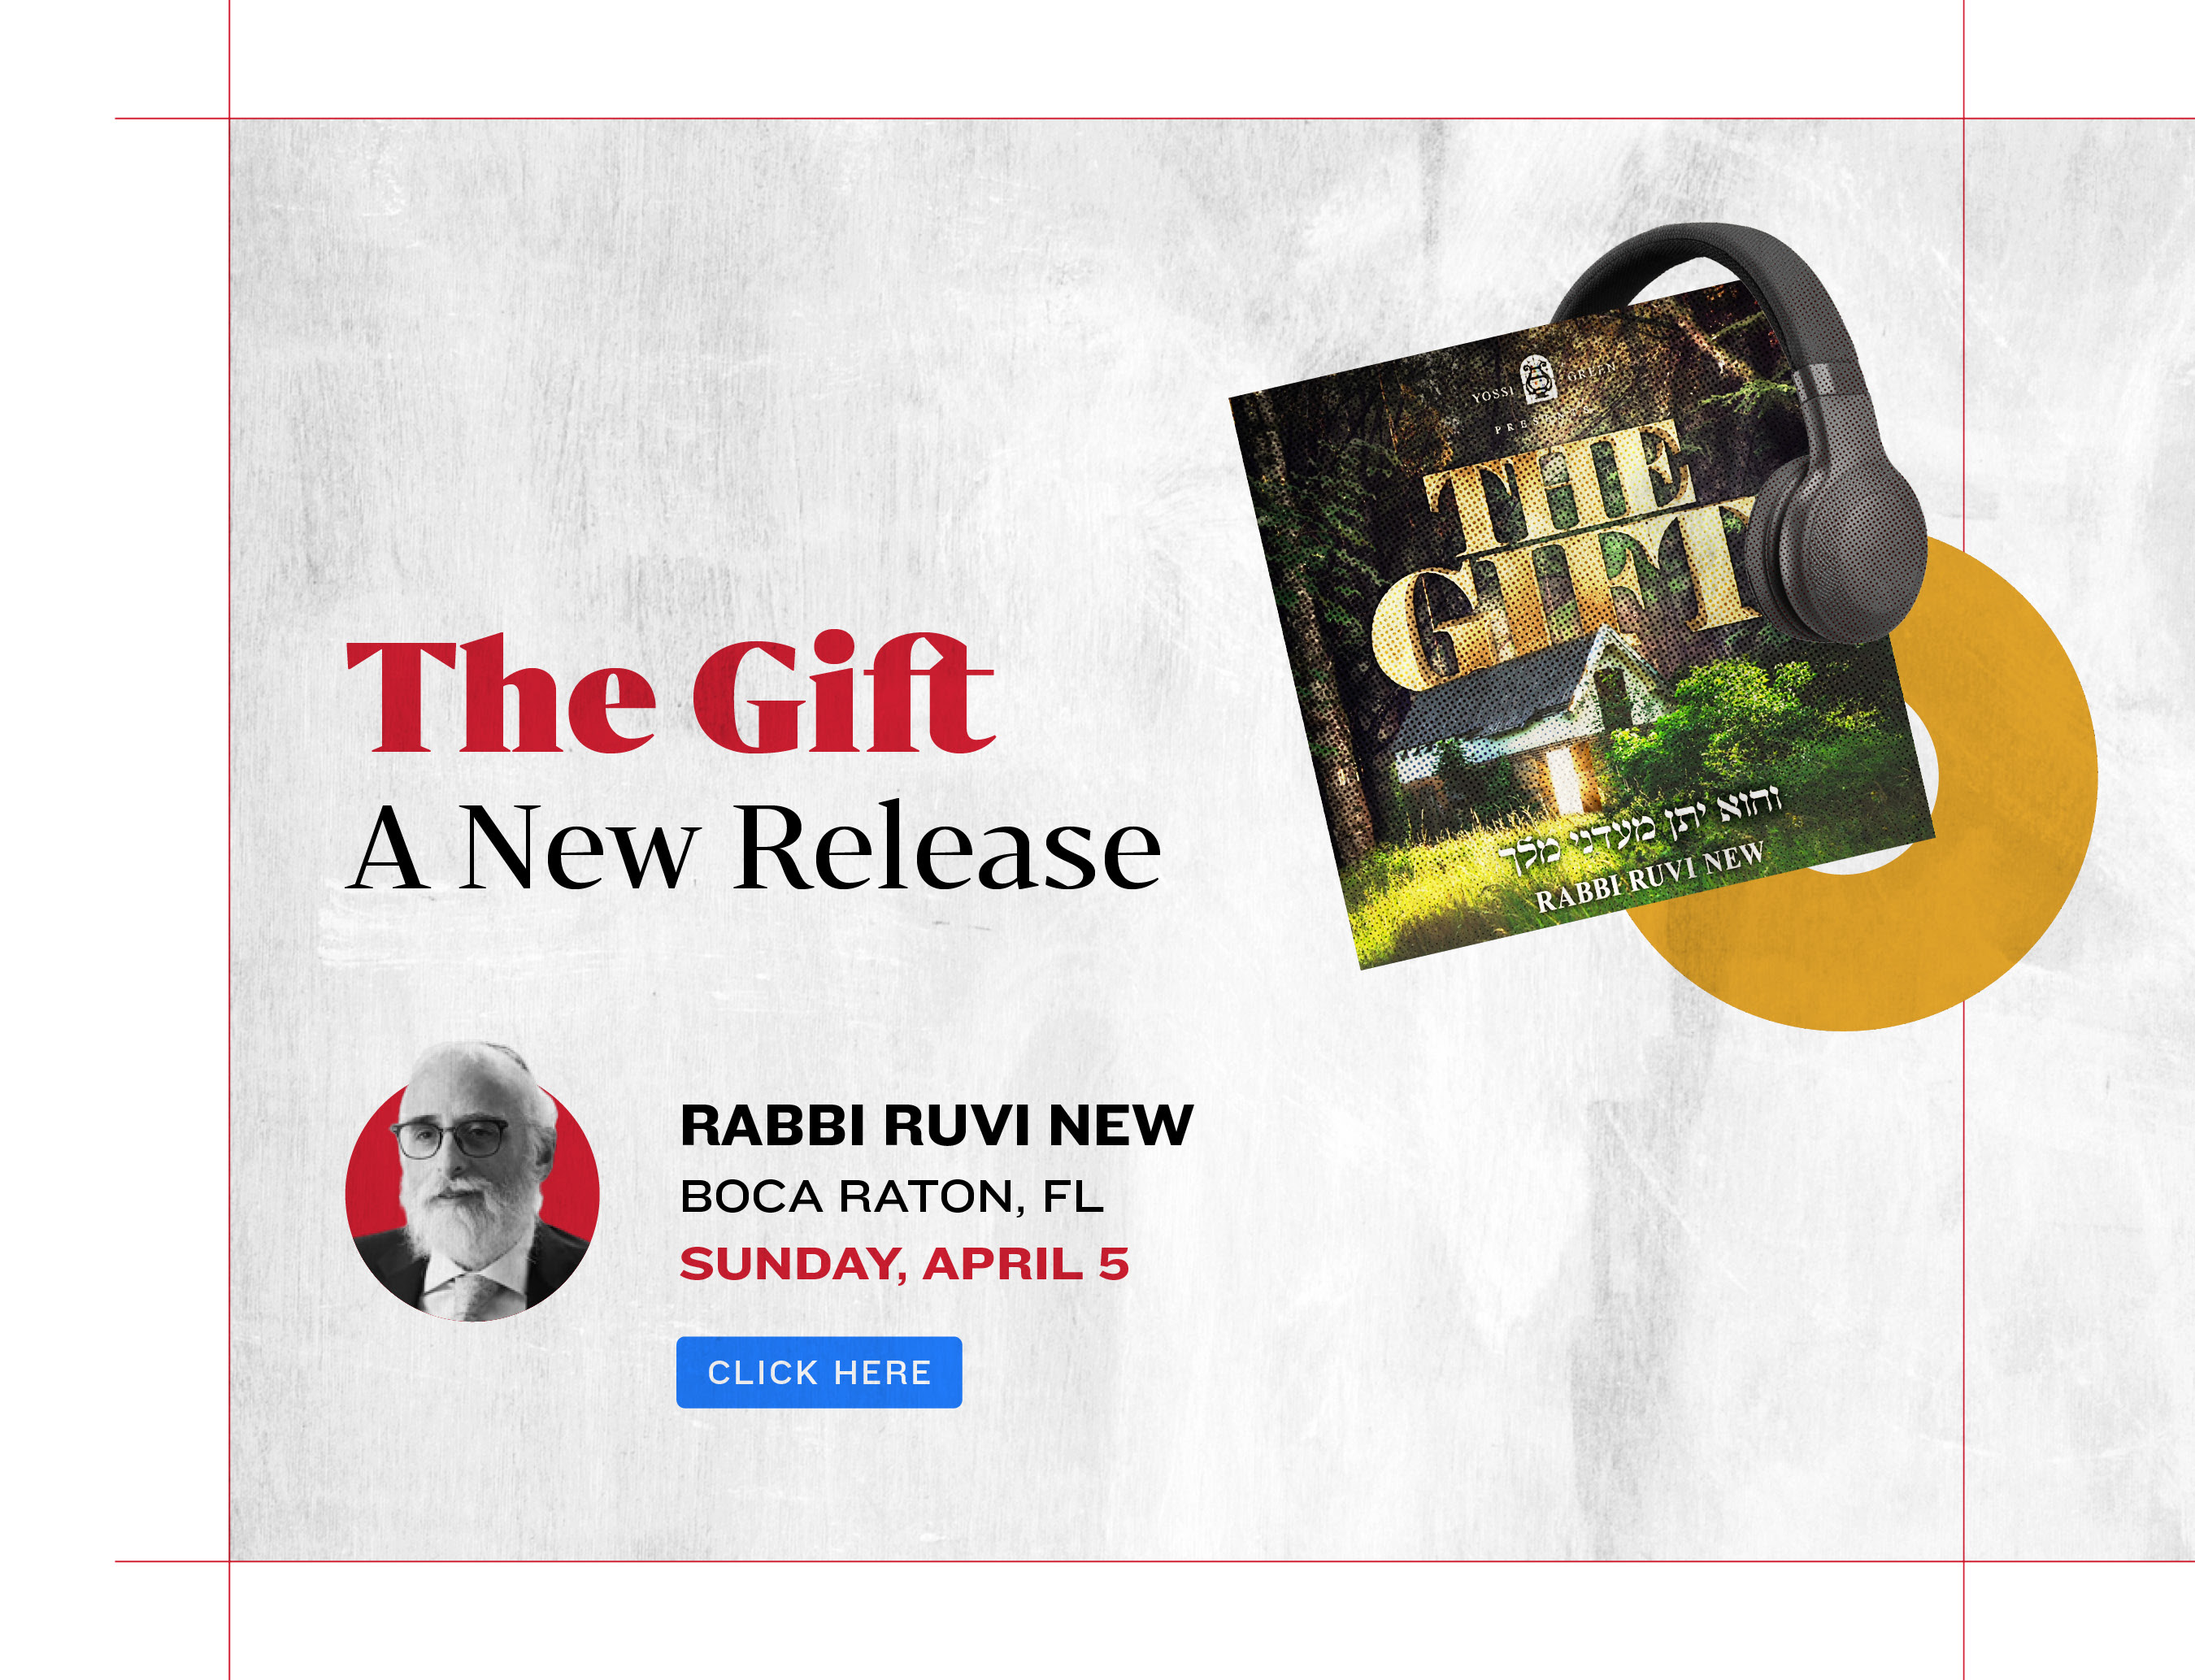 The Gift. A New Release